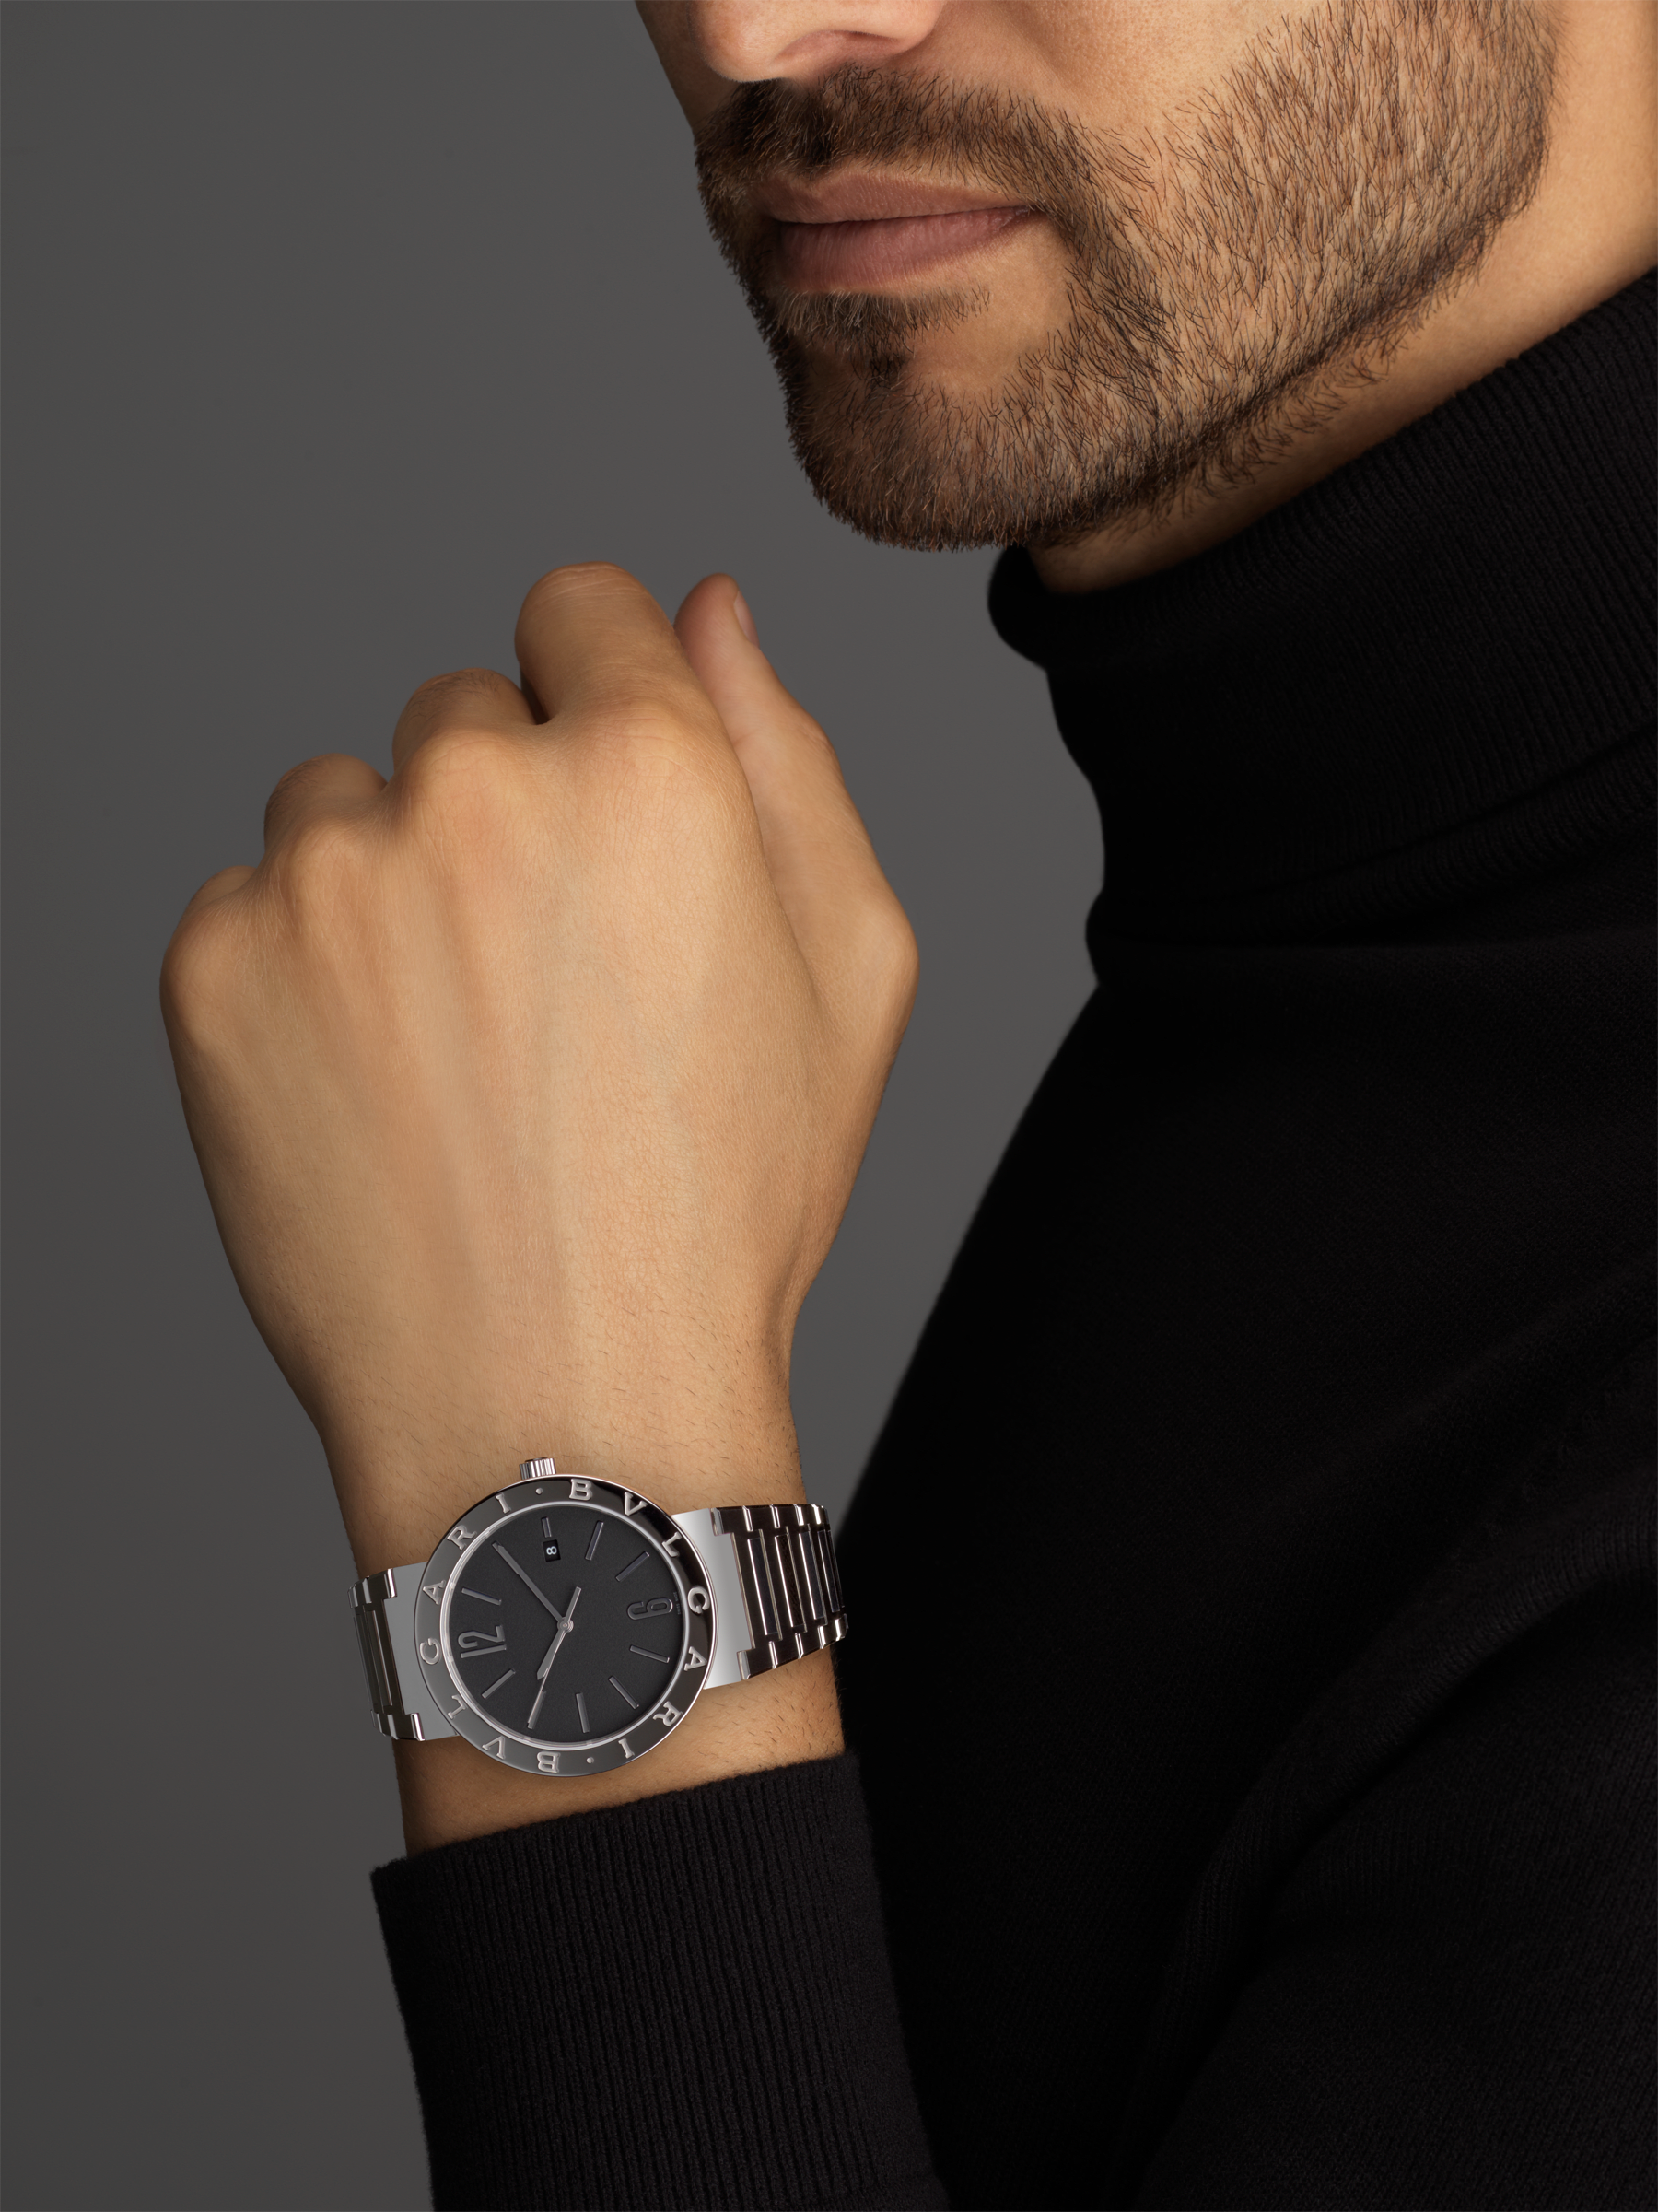 BVLGARI BVLGARI Solotempo watch with mechanical manufacture movement, automatic winding and date, stainless steel case and bracelet, stainless steel bezel engraved with double logo and black dial 102928 image 3